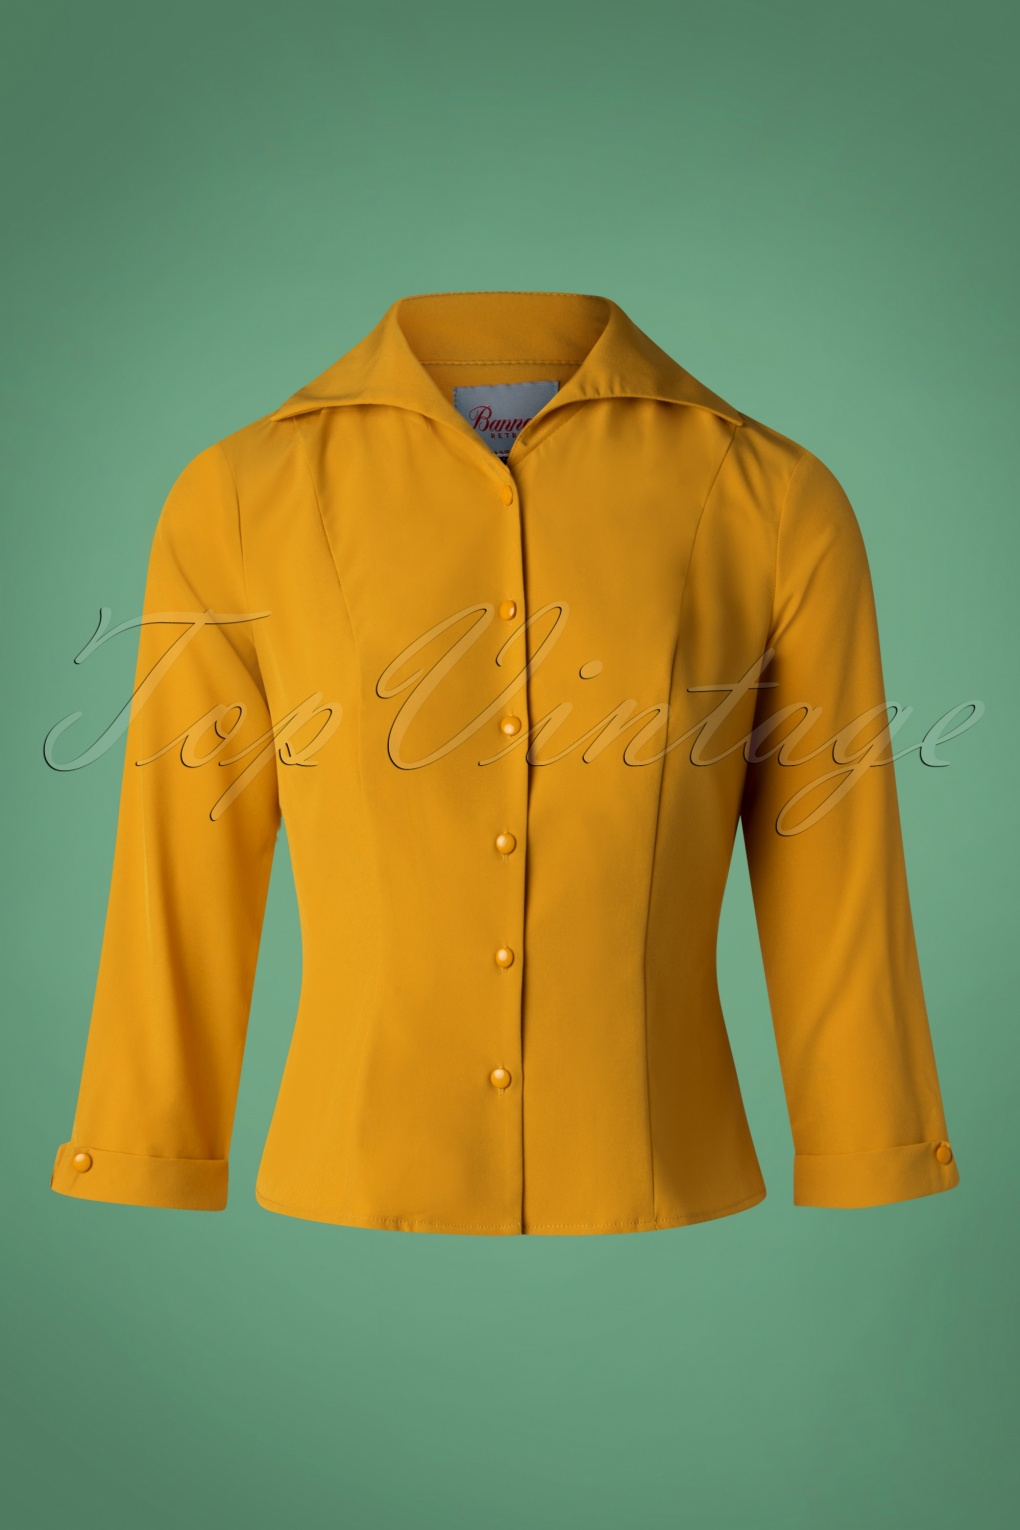 1950s Rockabilly & Pin Up Tops, Blouses, Shirts 50s Janine Blouse in Mustard £17.04 AT vintagedancer.com